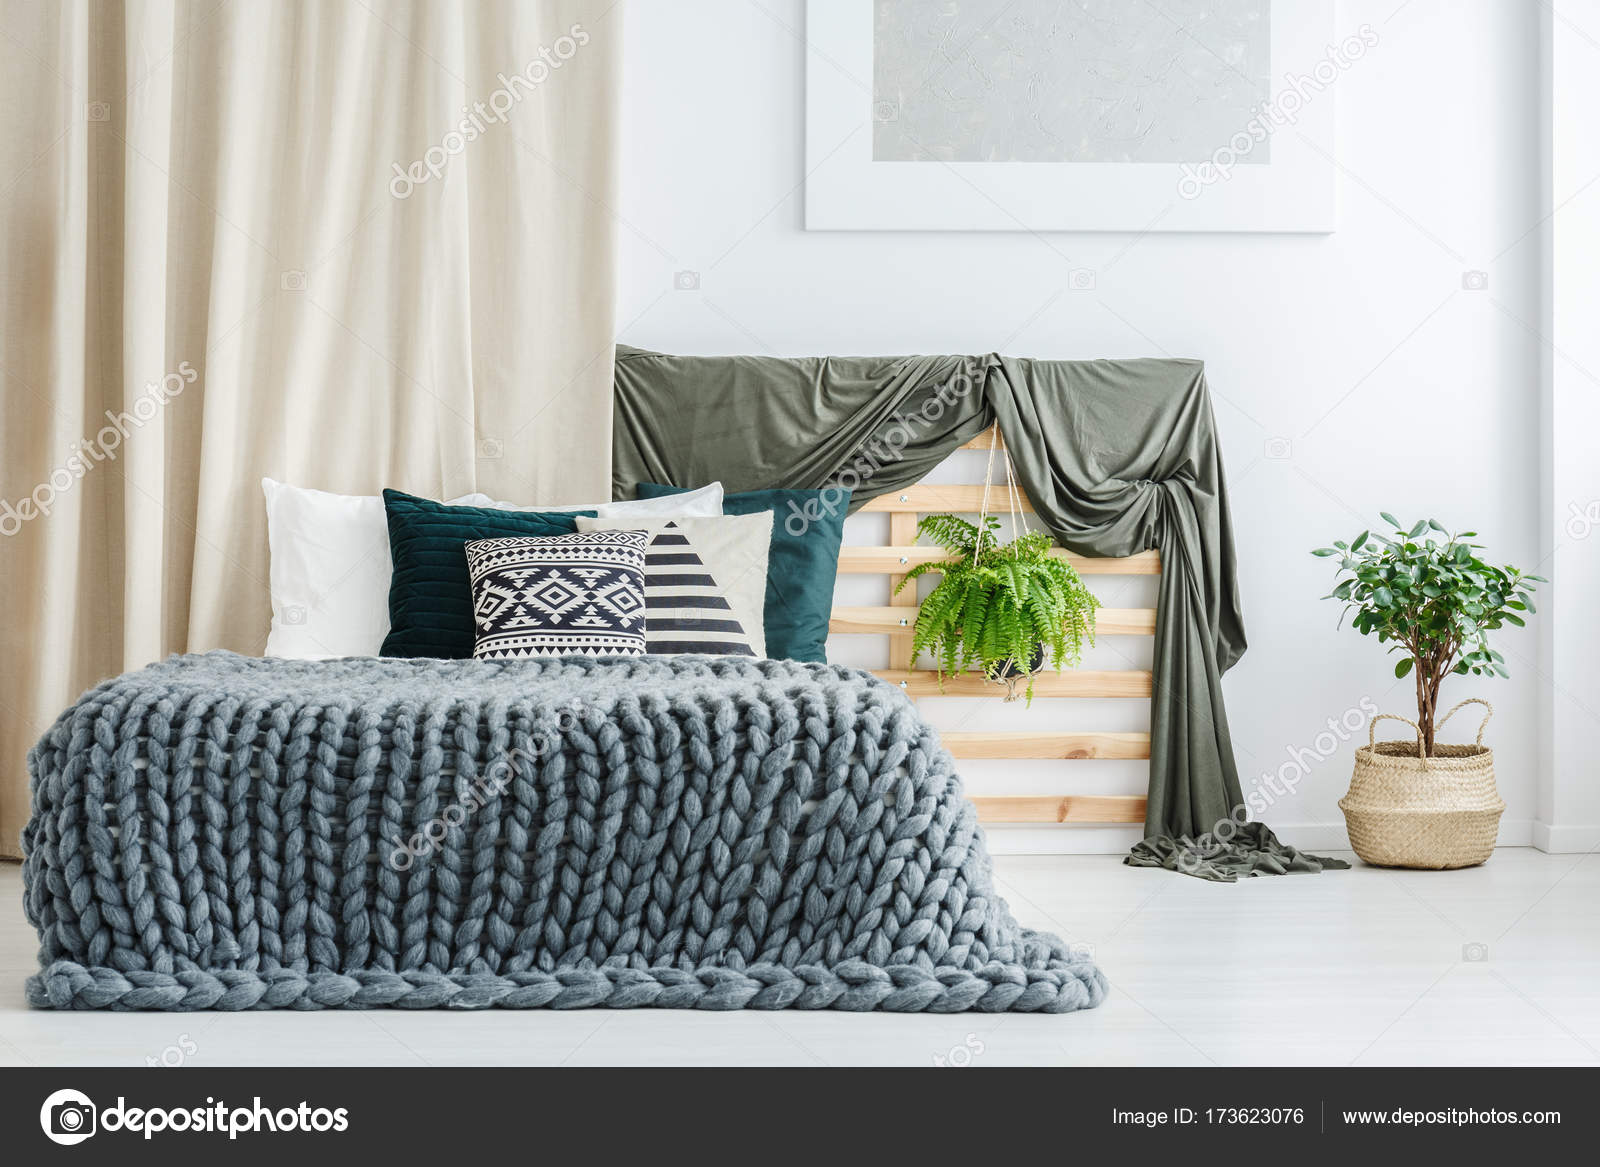 Bed Deken Grey Brei Deken Op Bed Stockfoto Photographee Eu 173623076